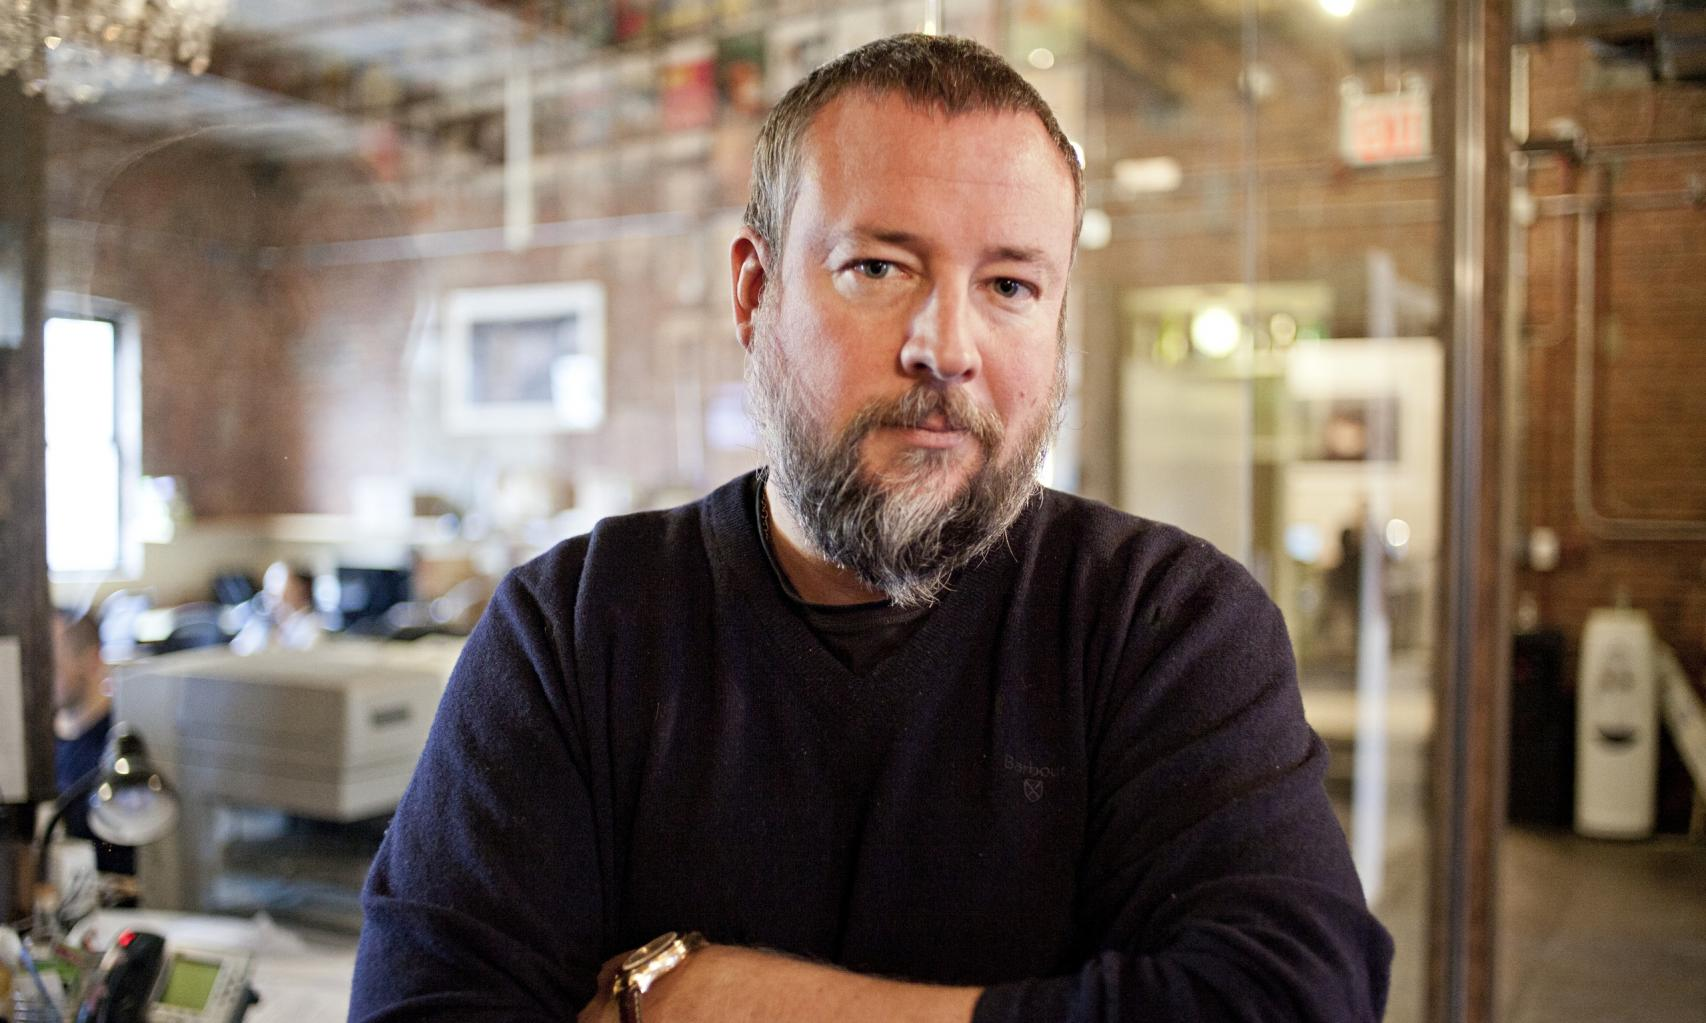 Shane Smith = Advertisers Need To Leave Their Comfort Zone - C3 Metrics